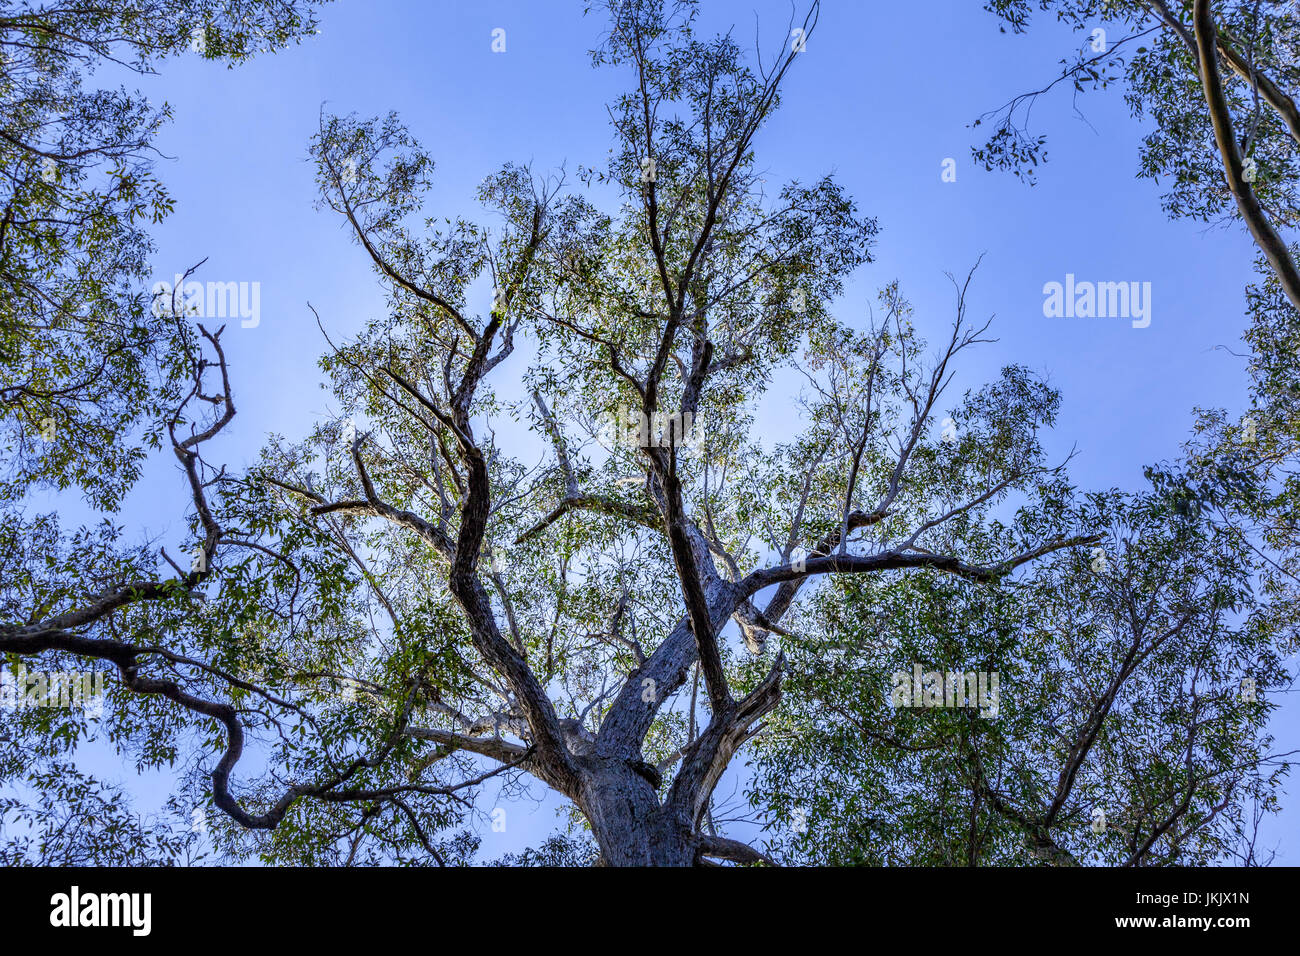 Australian native blue gum trees and sky - Stock Image